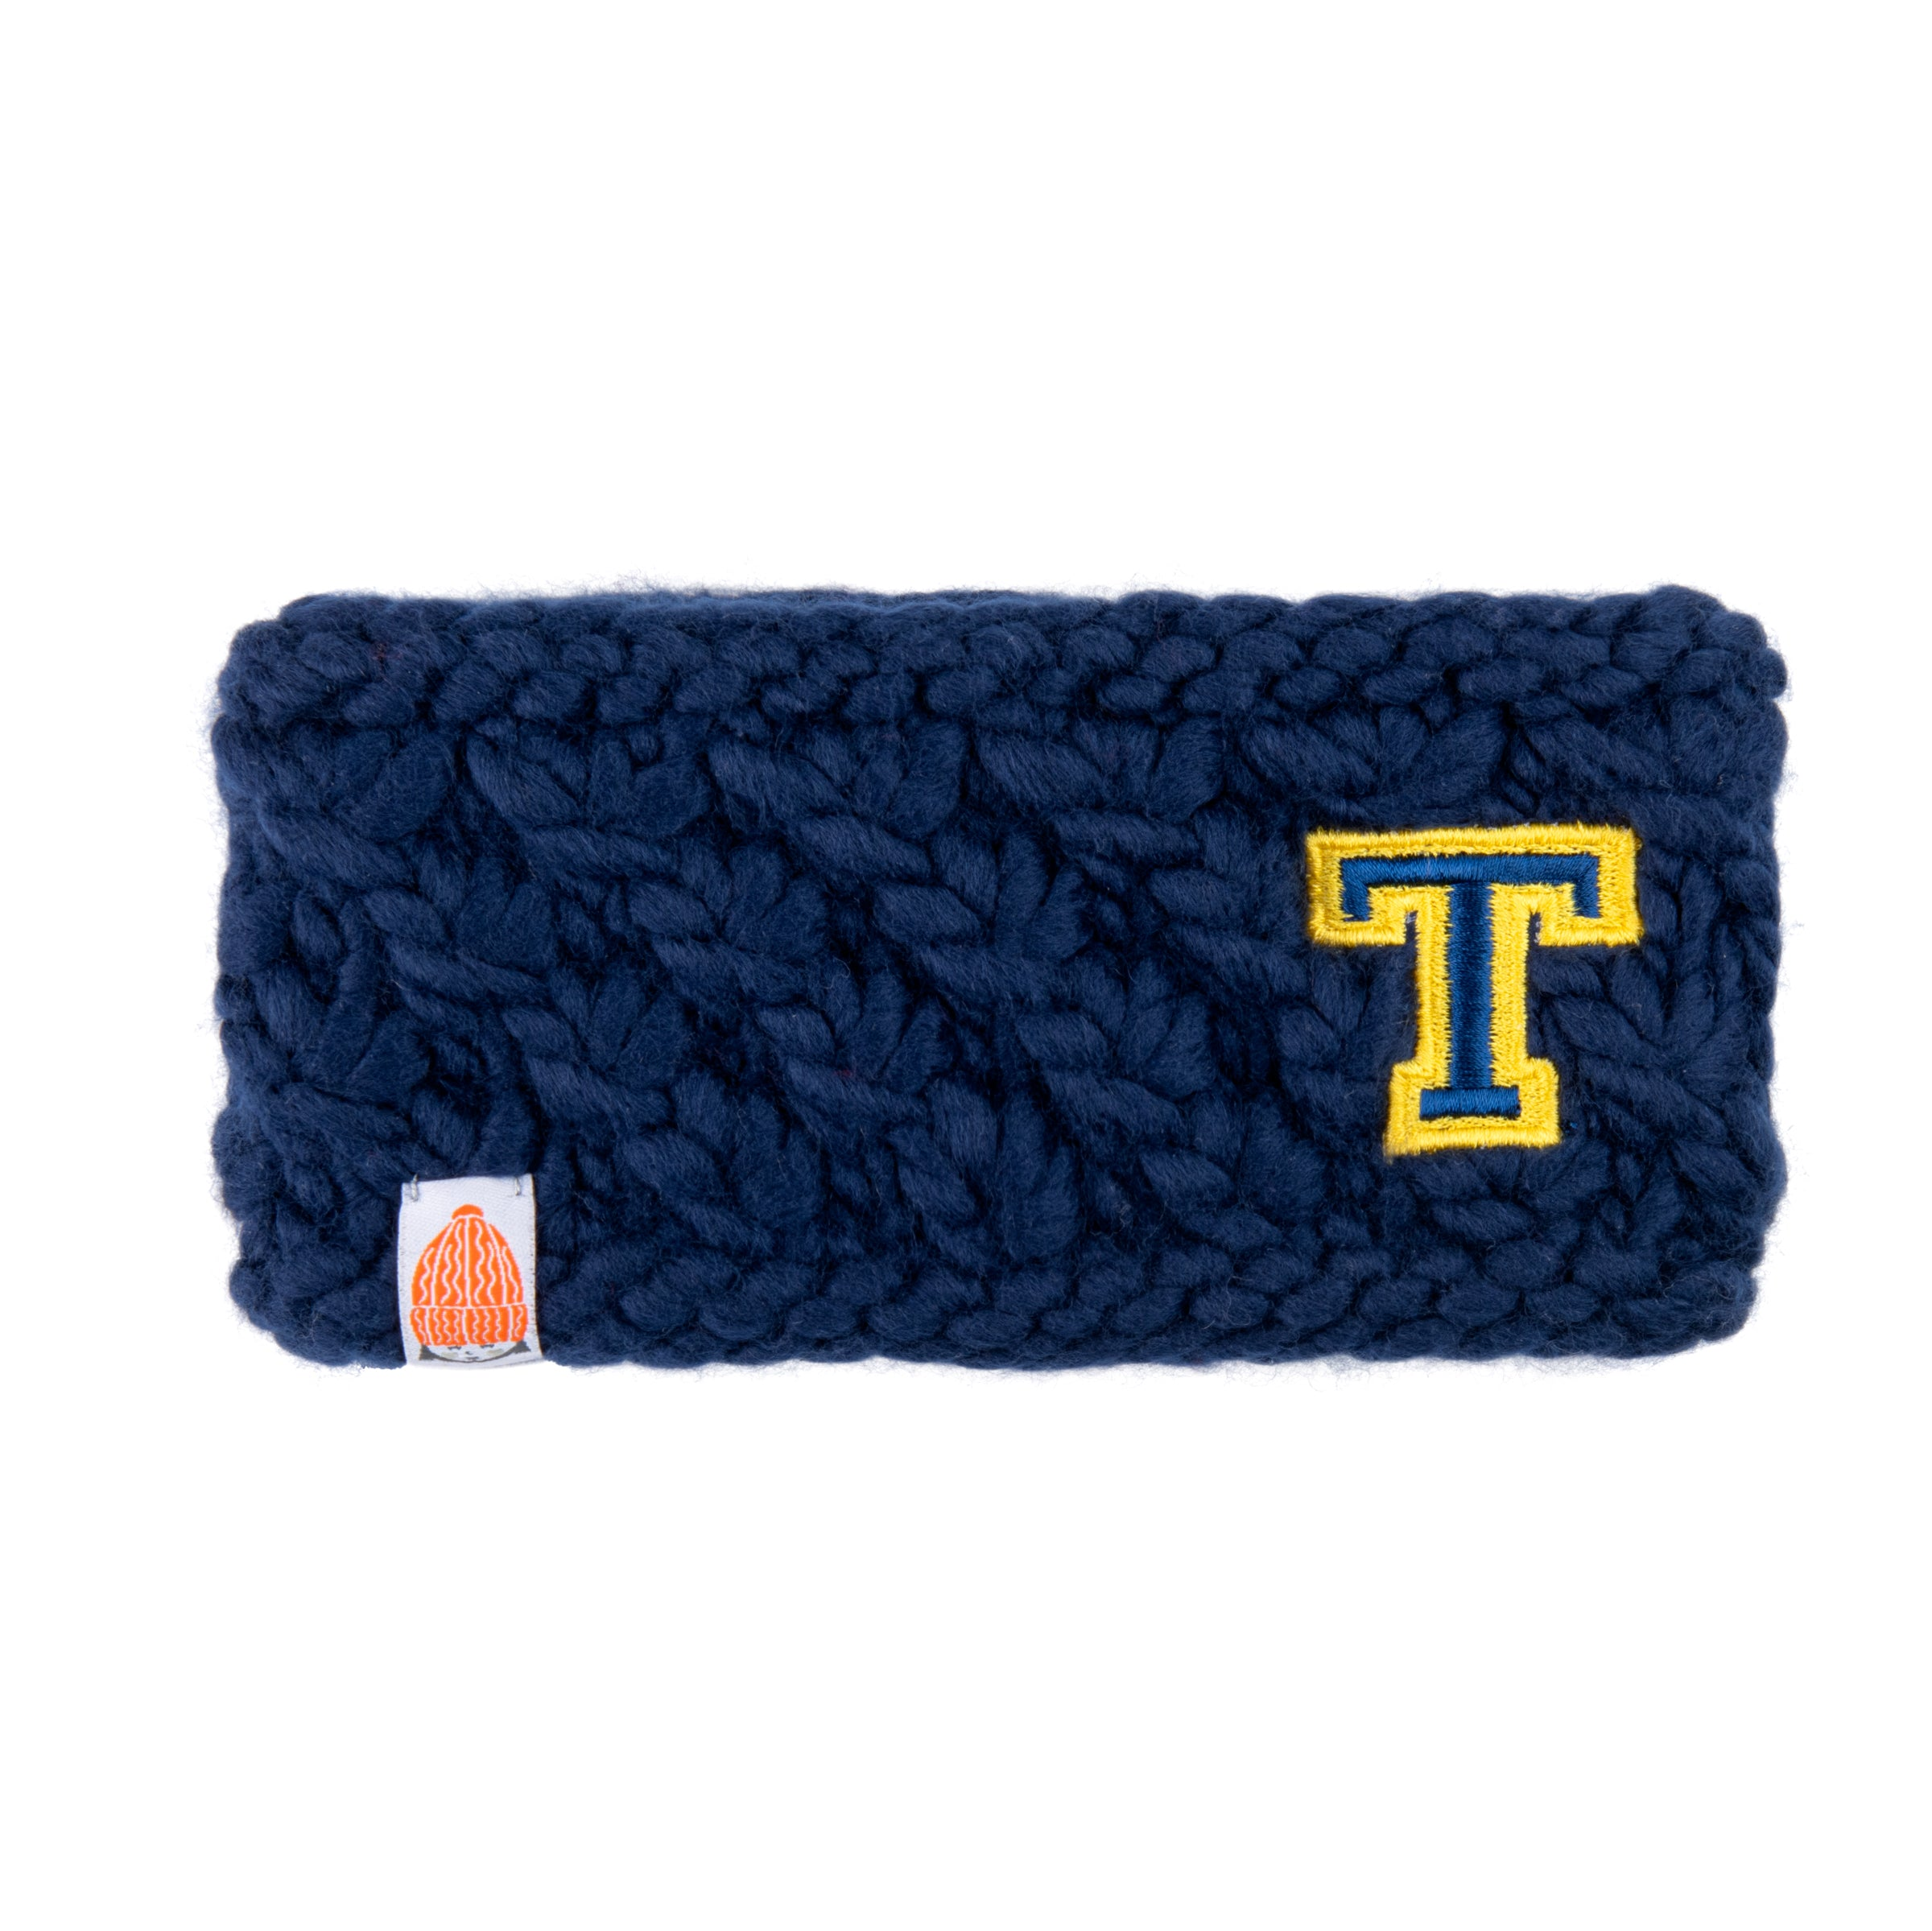 The Collegiate Headband